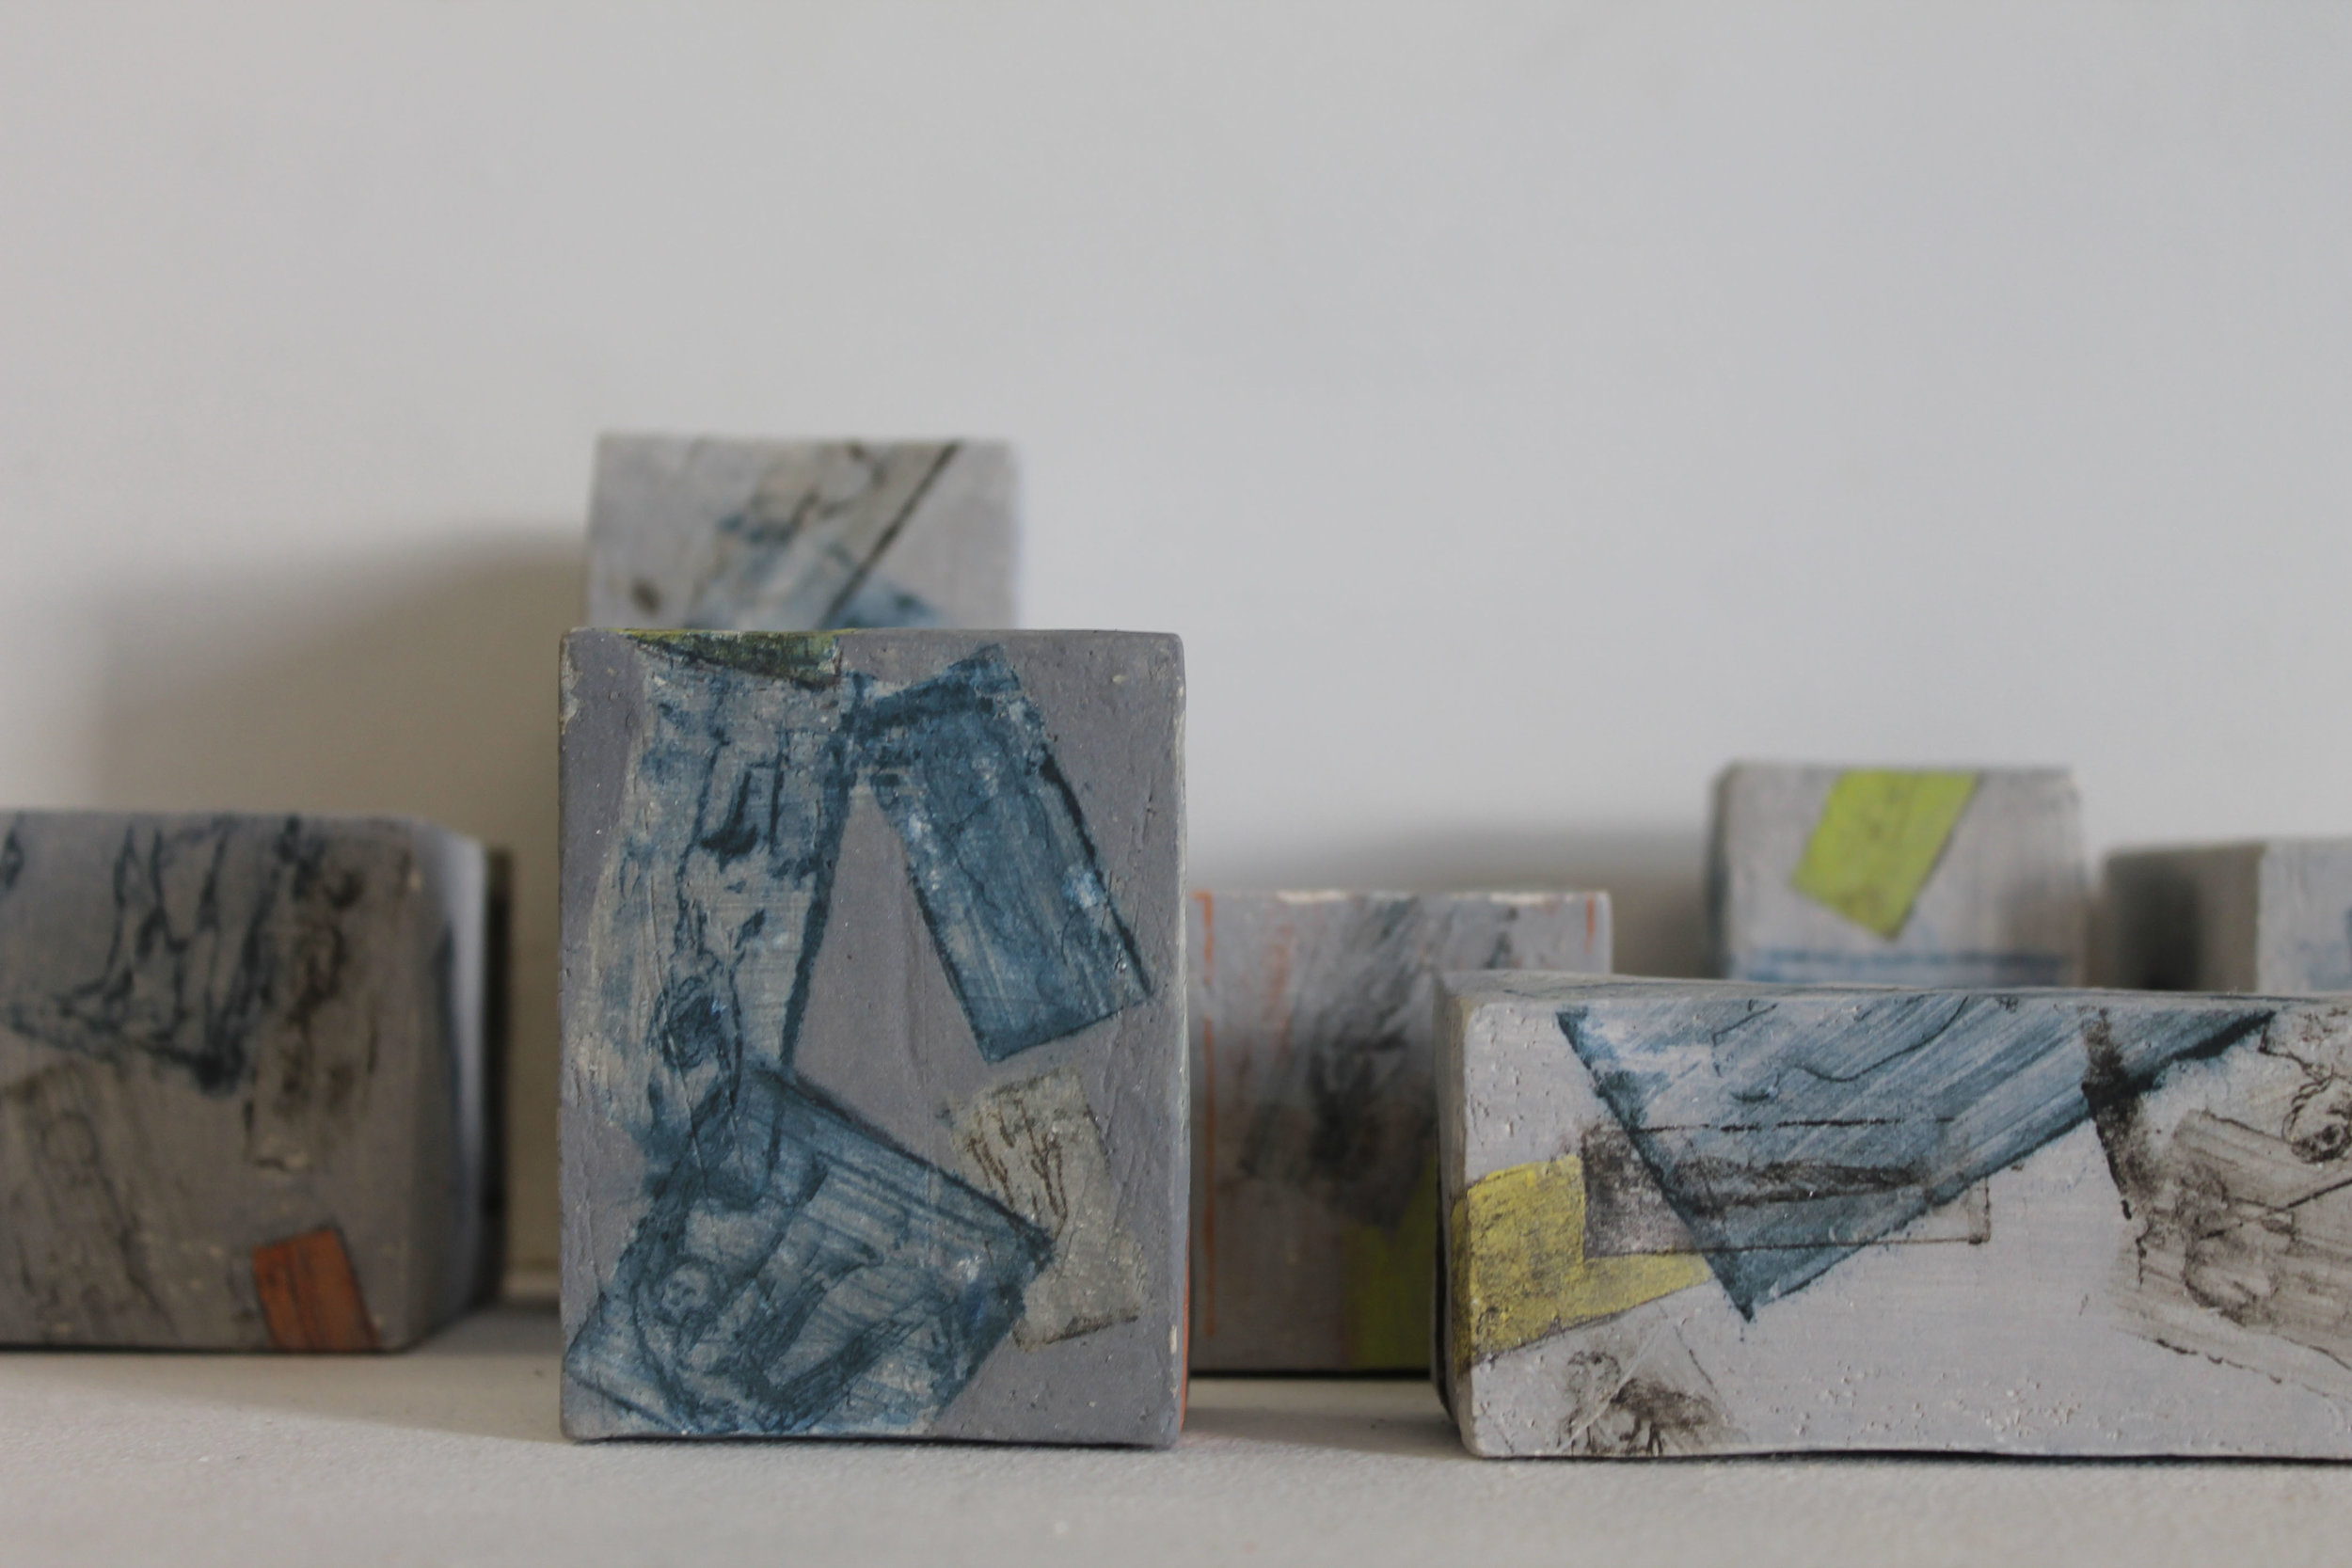 Colliding Forms with Helen Lavery(Ceramic Bricks, Handprinted Etchings) III.jpg